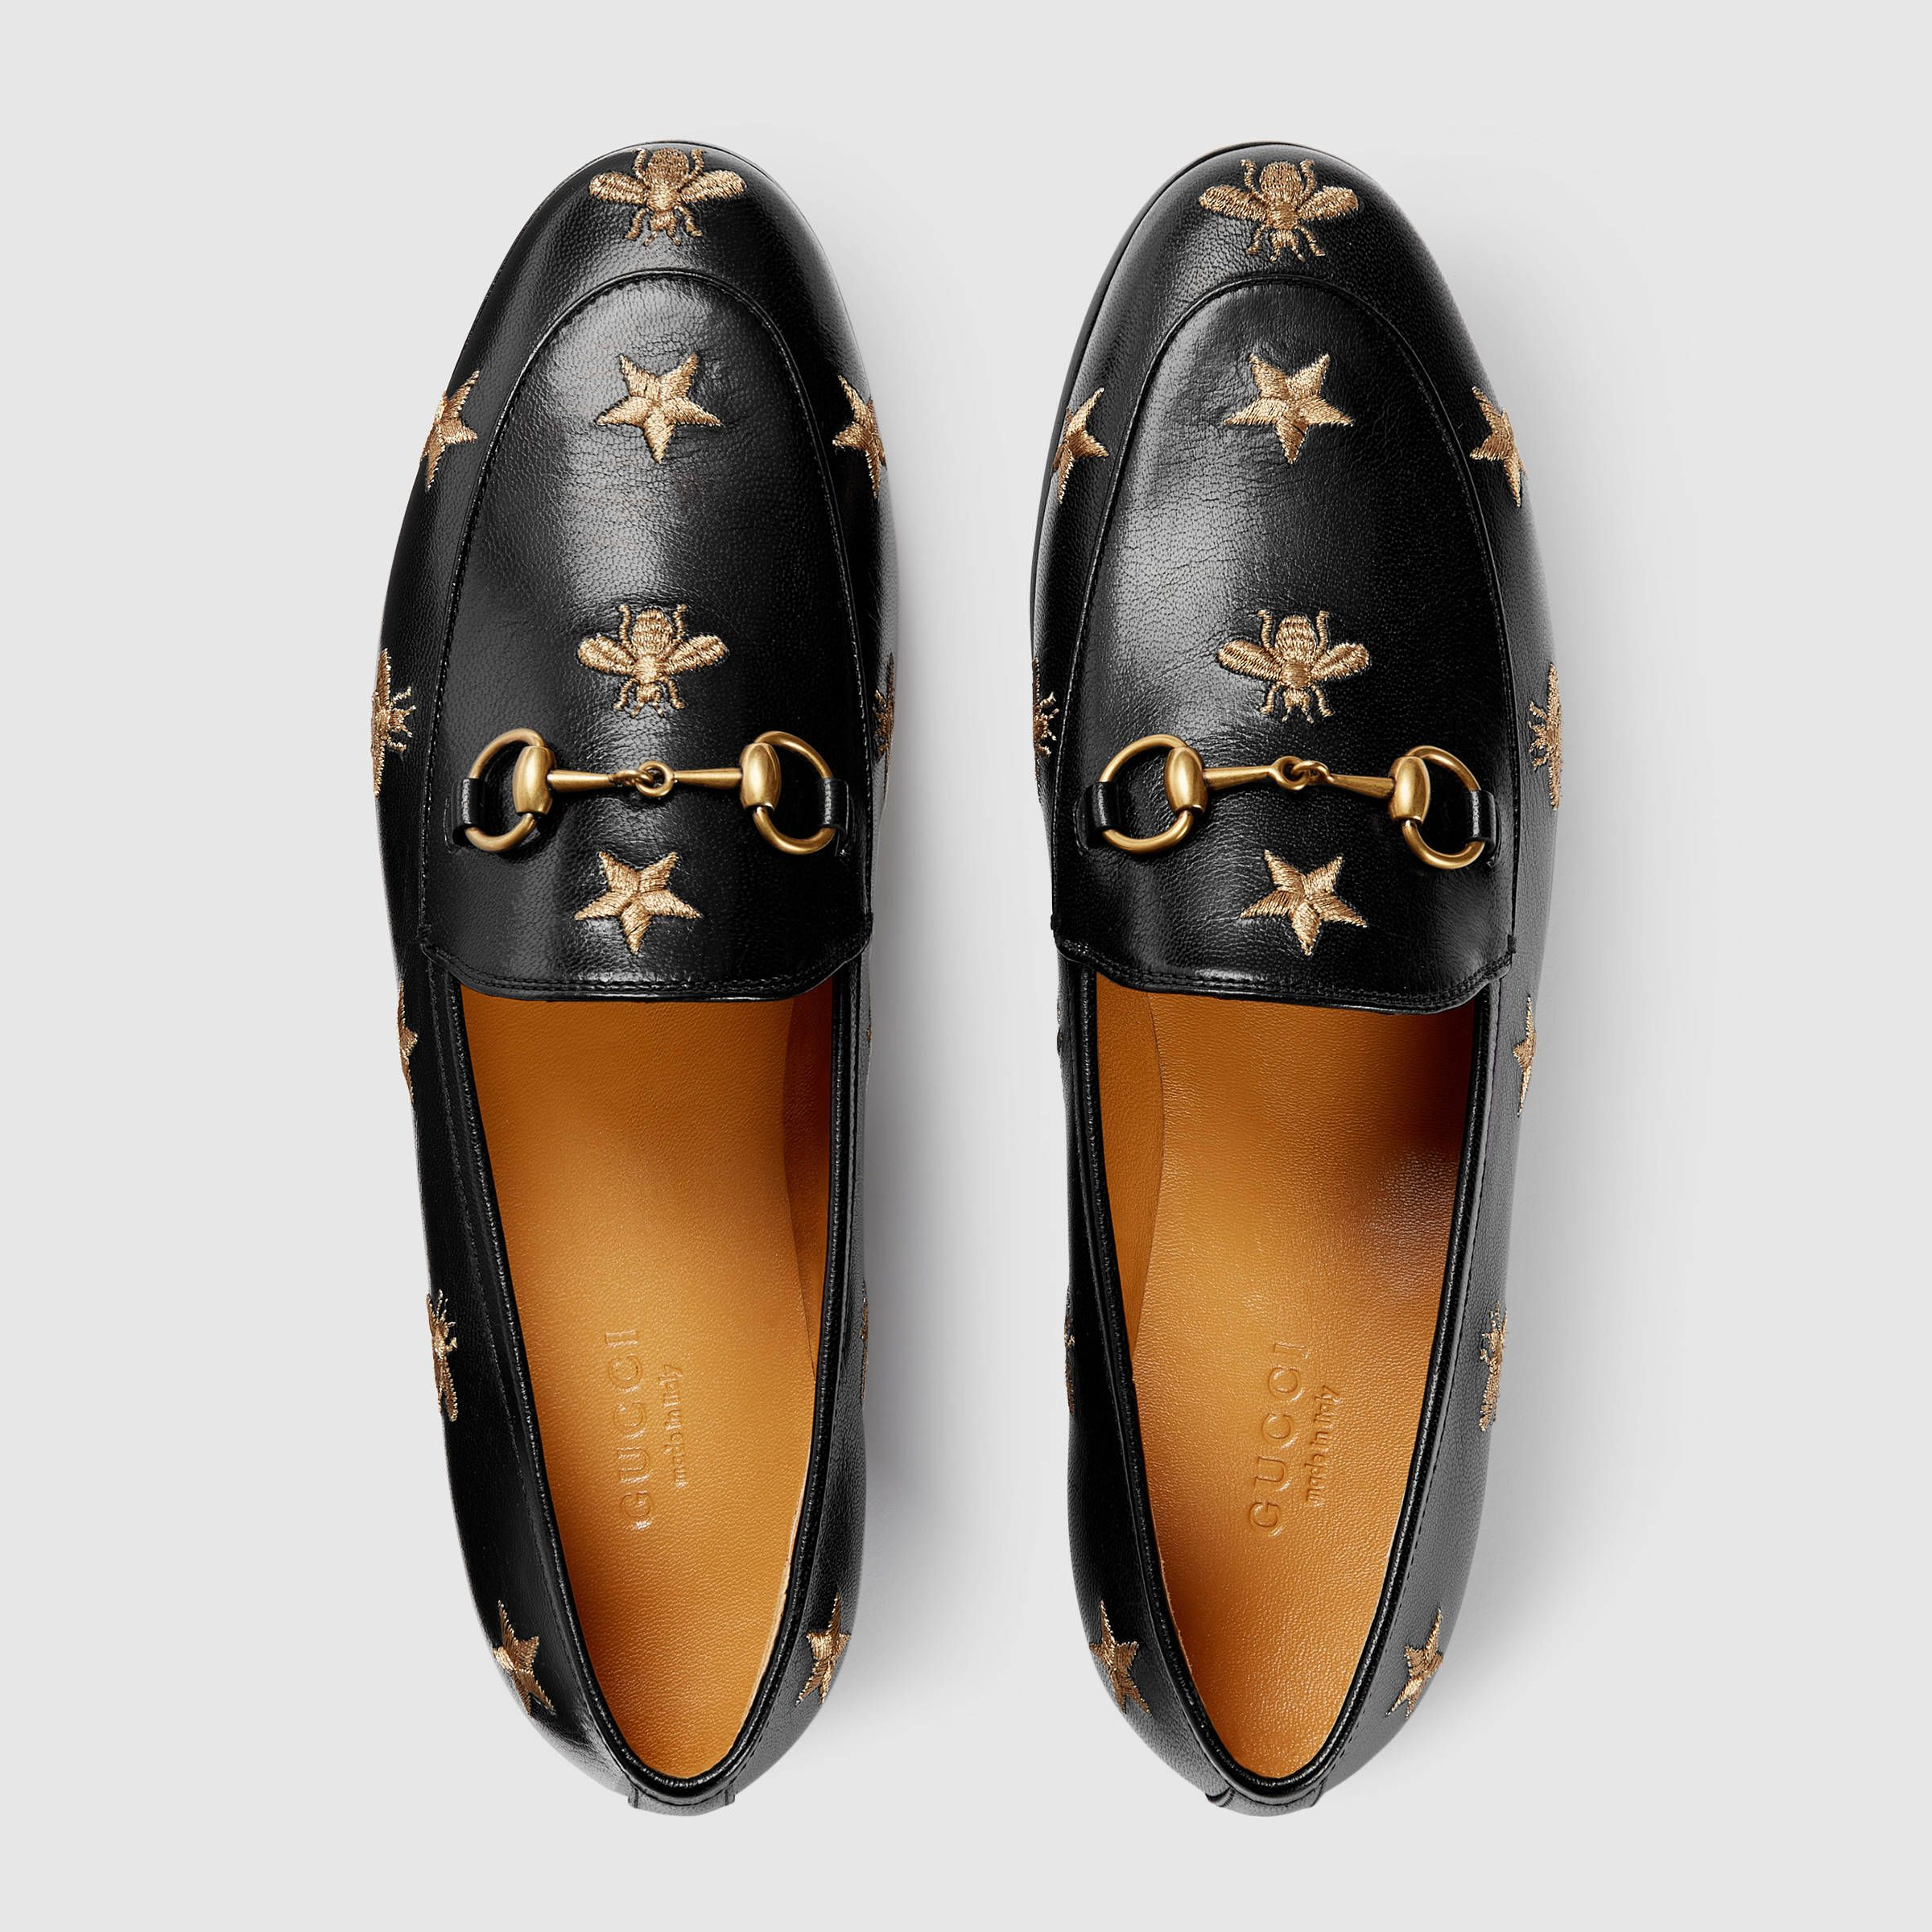 a69cfdebcd4 Gucci Gucci Jordaan embroidered leather loafer Detail 3